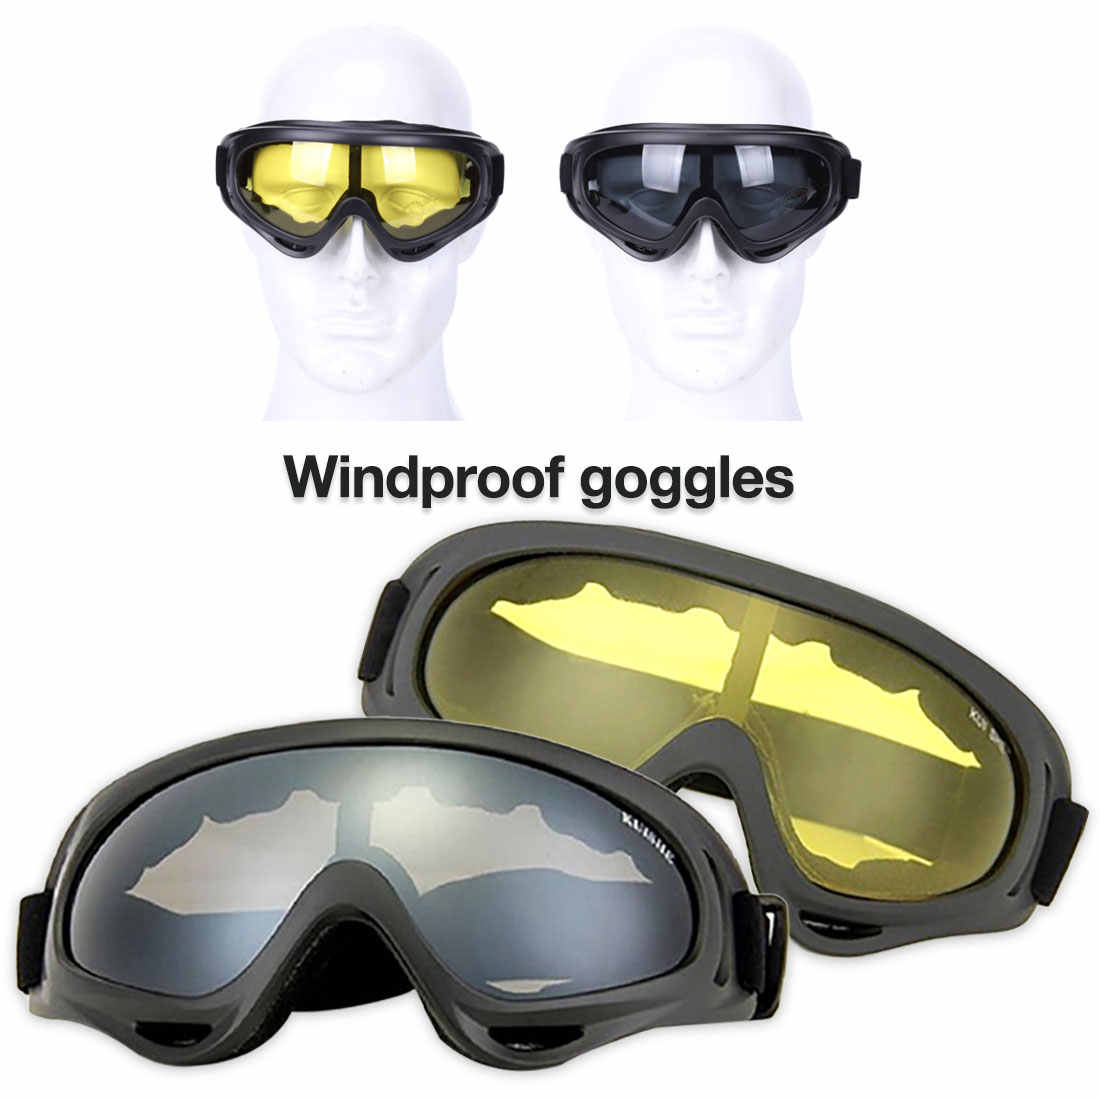 19922ac034 2019 Airsoft Wind Dust Tactical Goggle Glasses Outdoor Sports Cycling  Unisex Eyeglasses Military Army Protected Durable